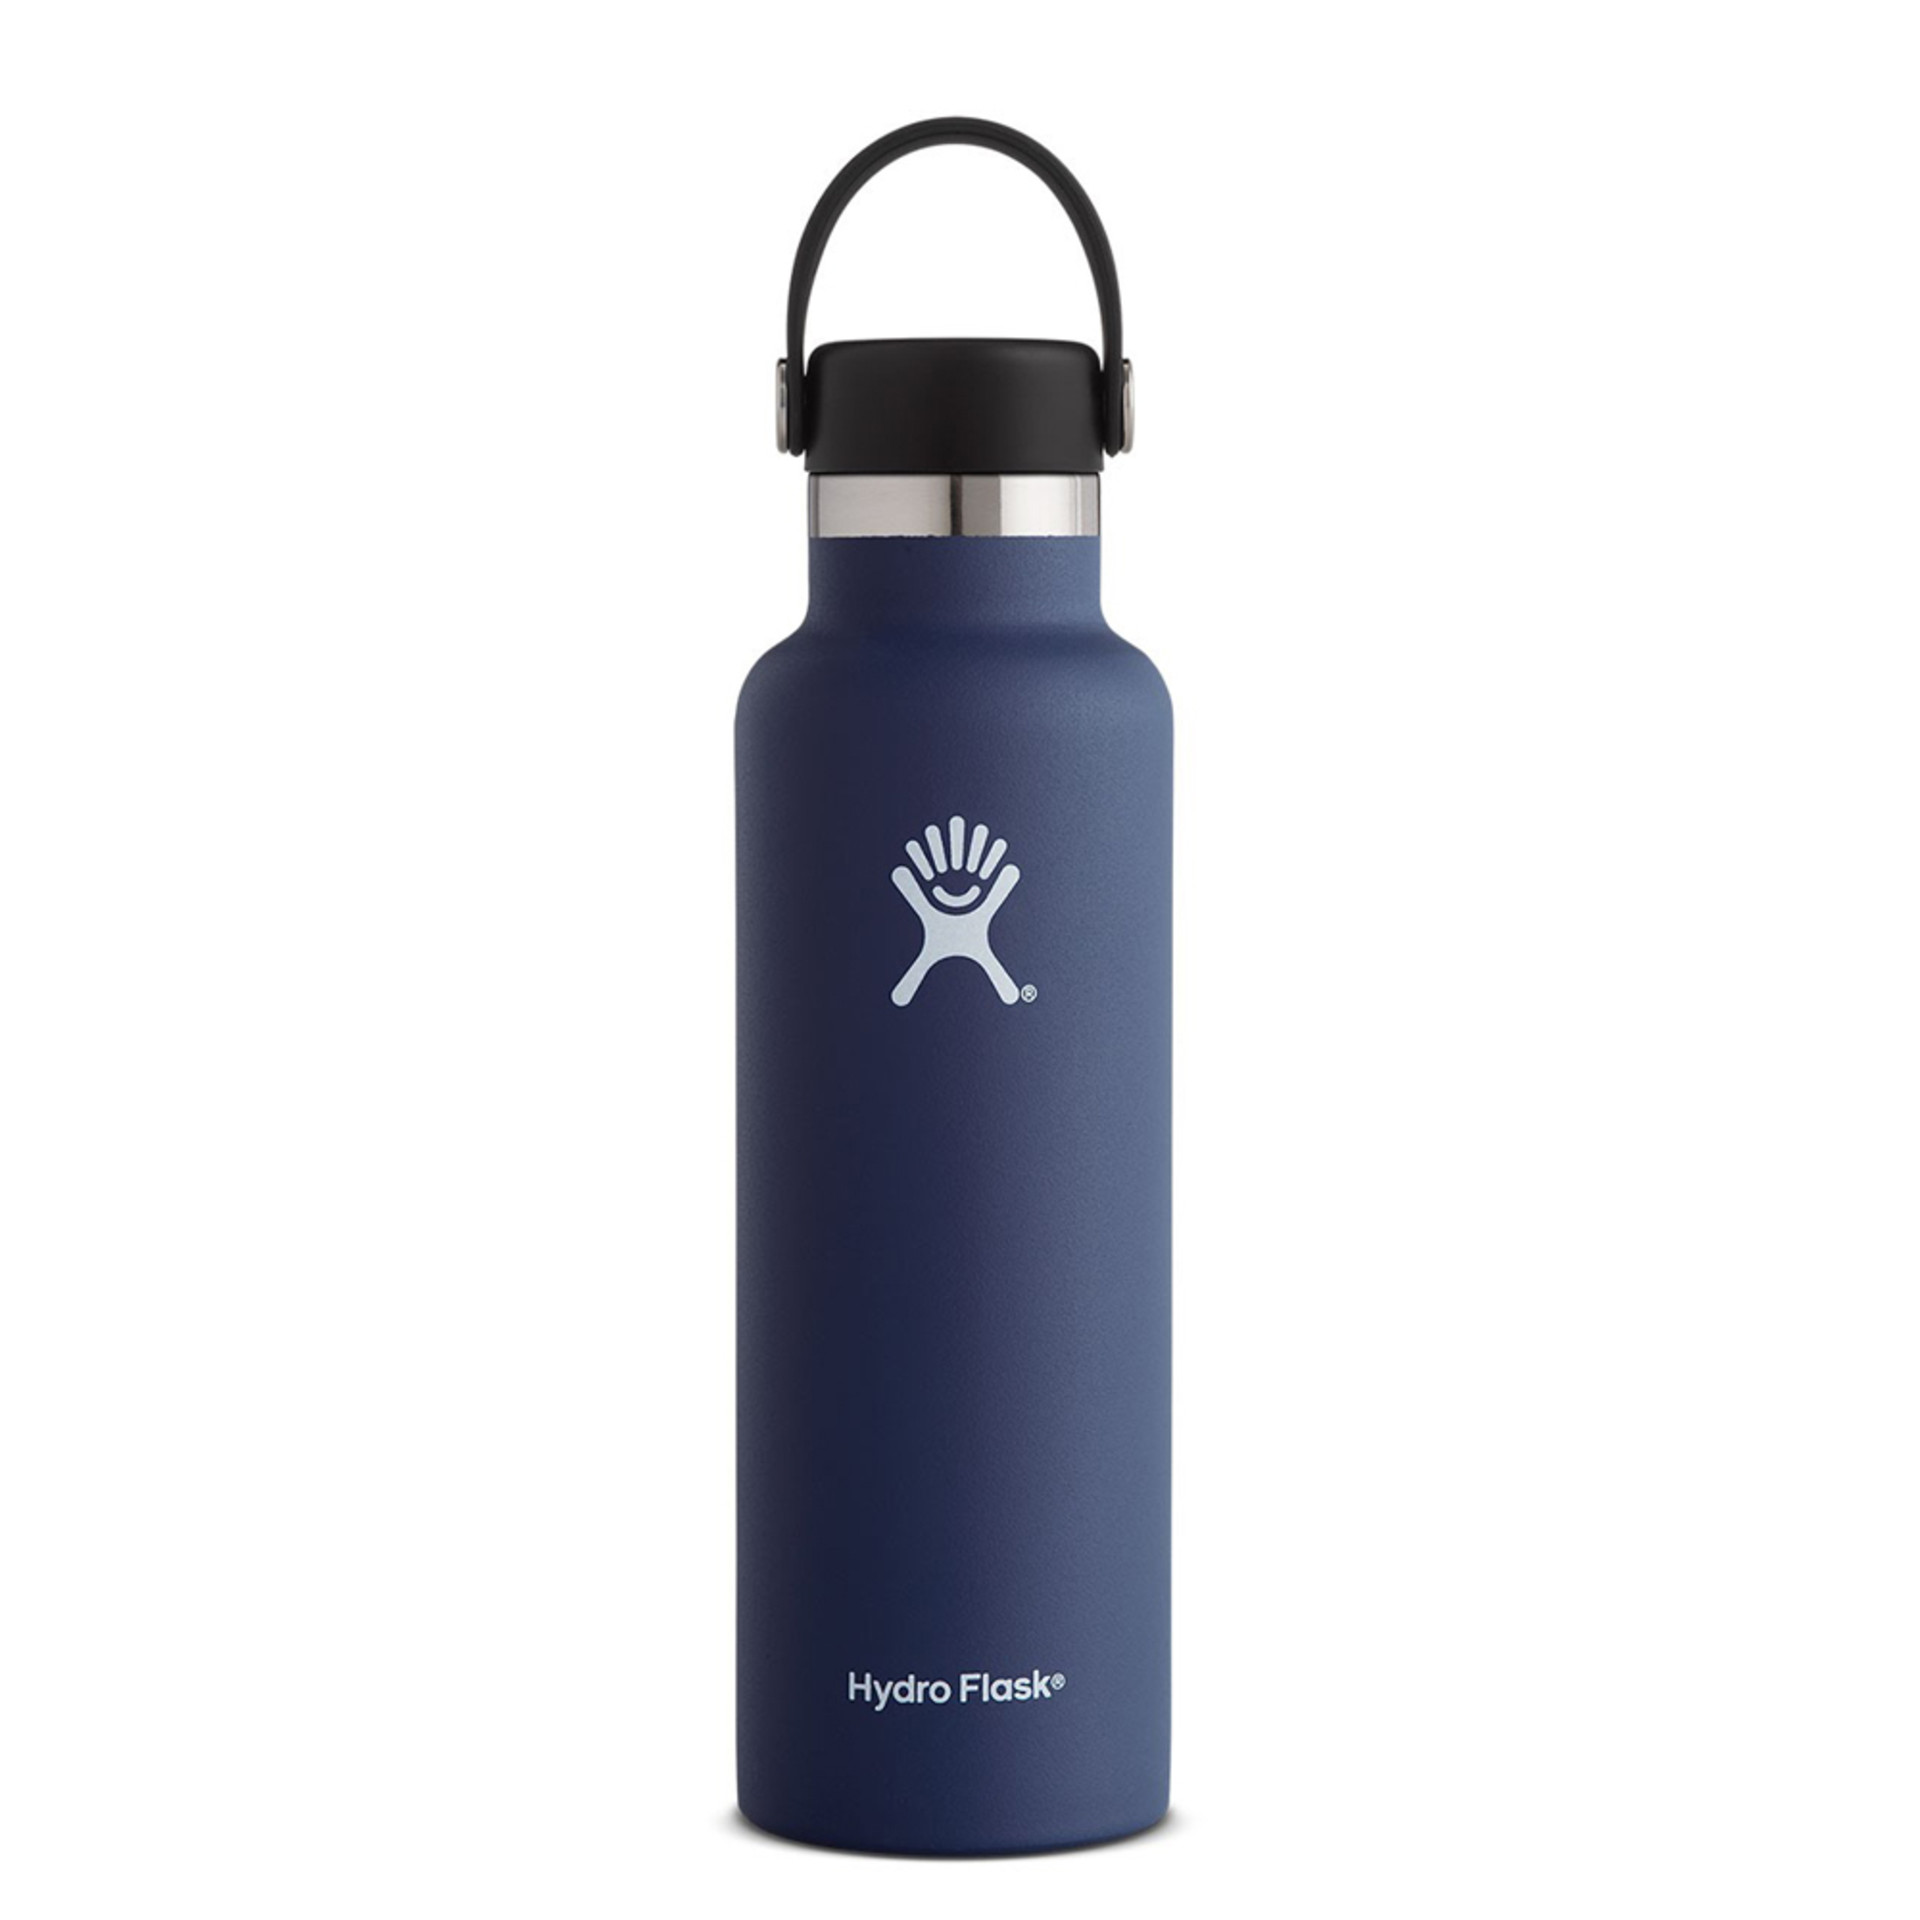 Hydro Flask Bottle Cobalt Blue